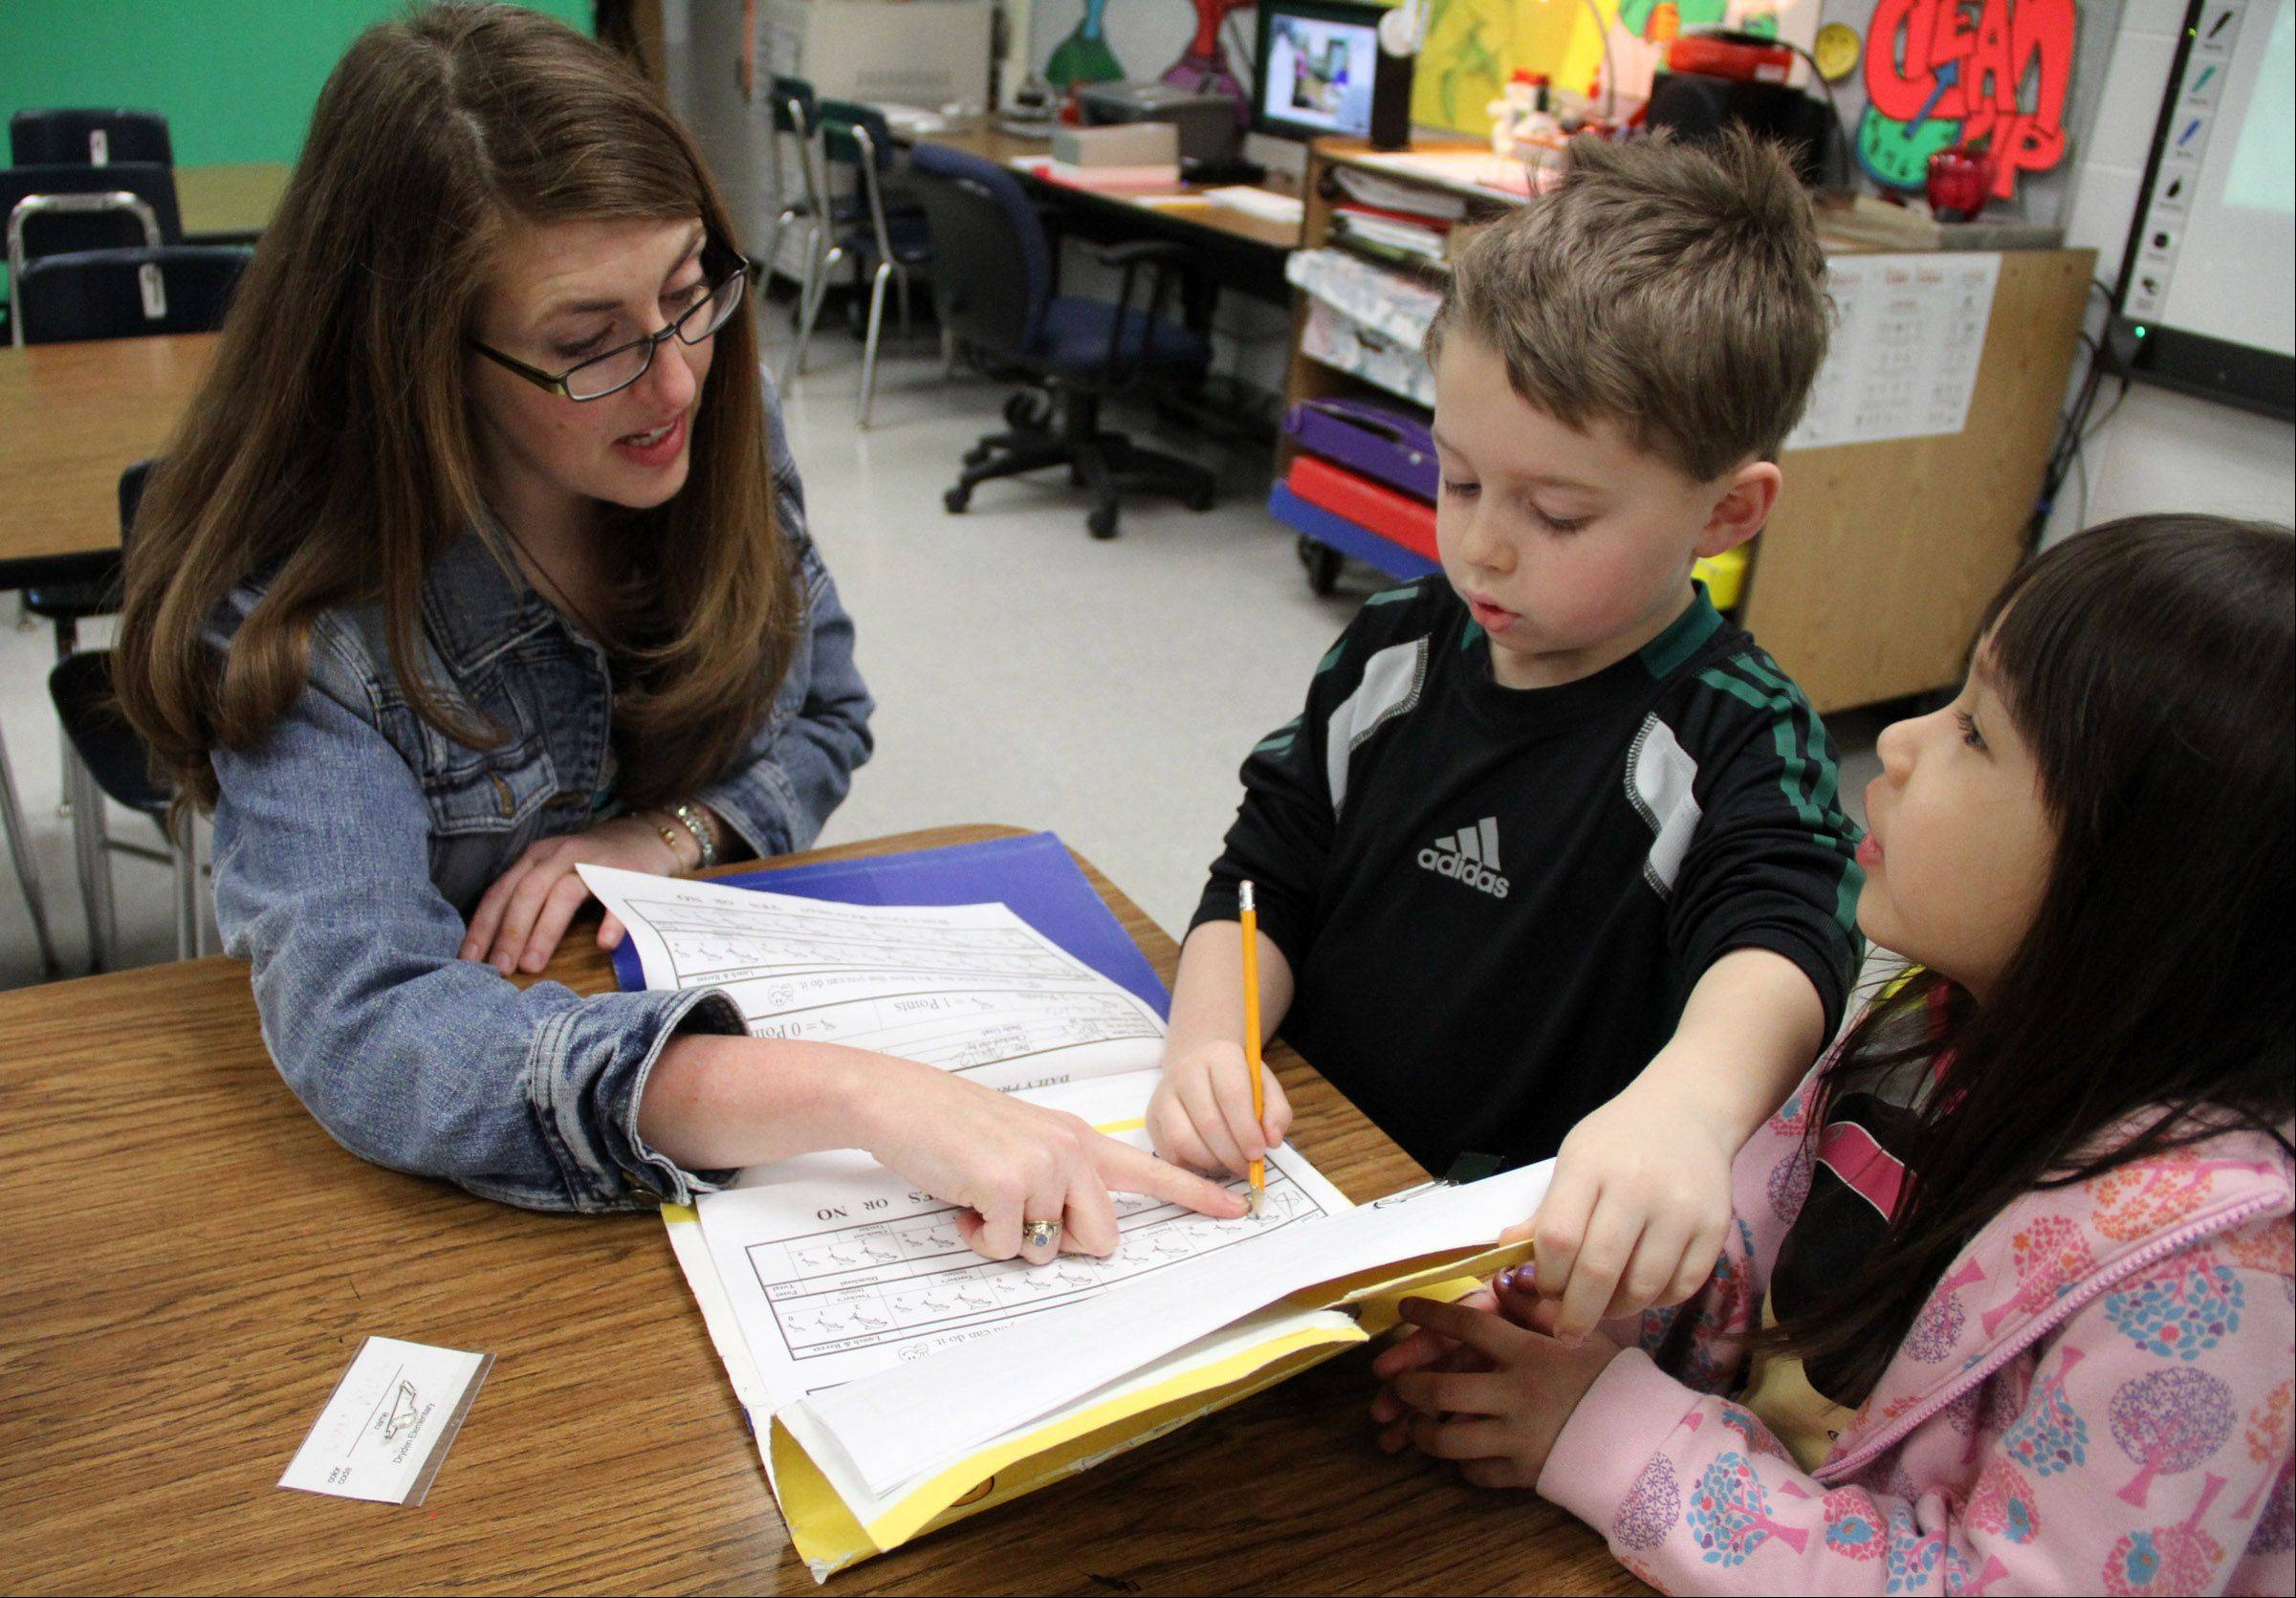 Dryden art teacher Tricia Fuglestad checks in first-graders Dylan Burnett, left, and Kaya Deleon before teaching her first class of the day.